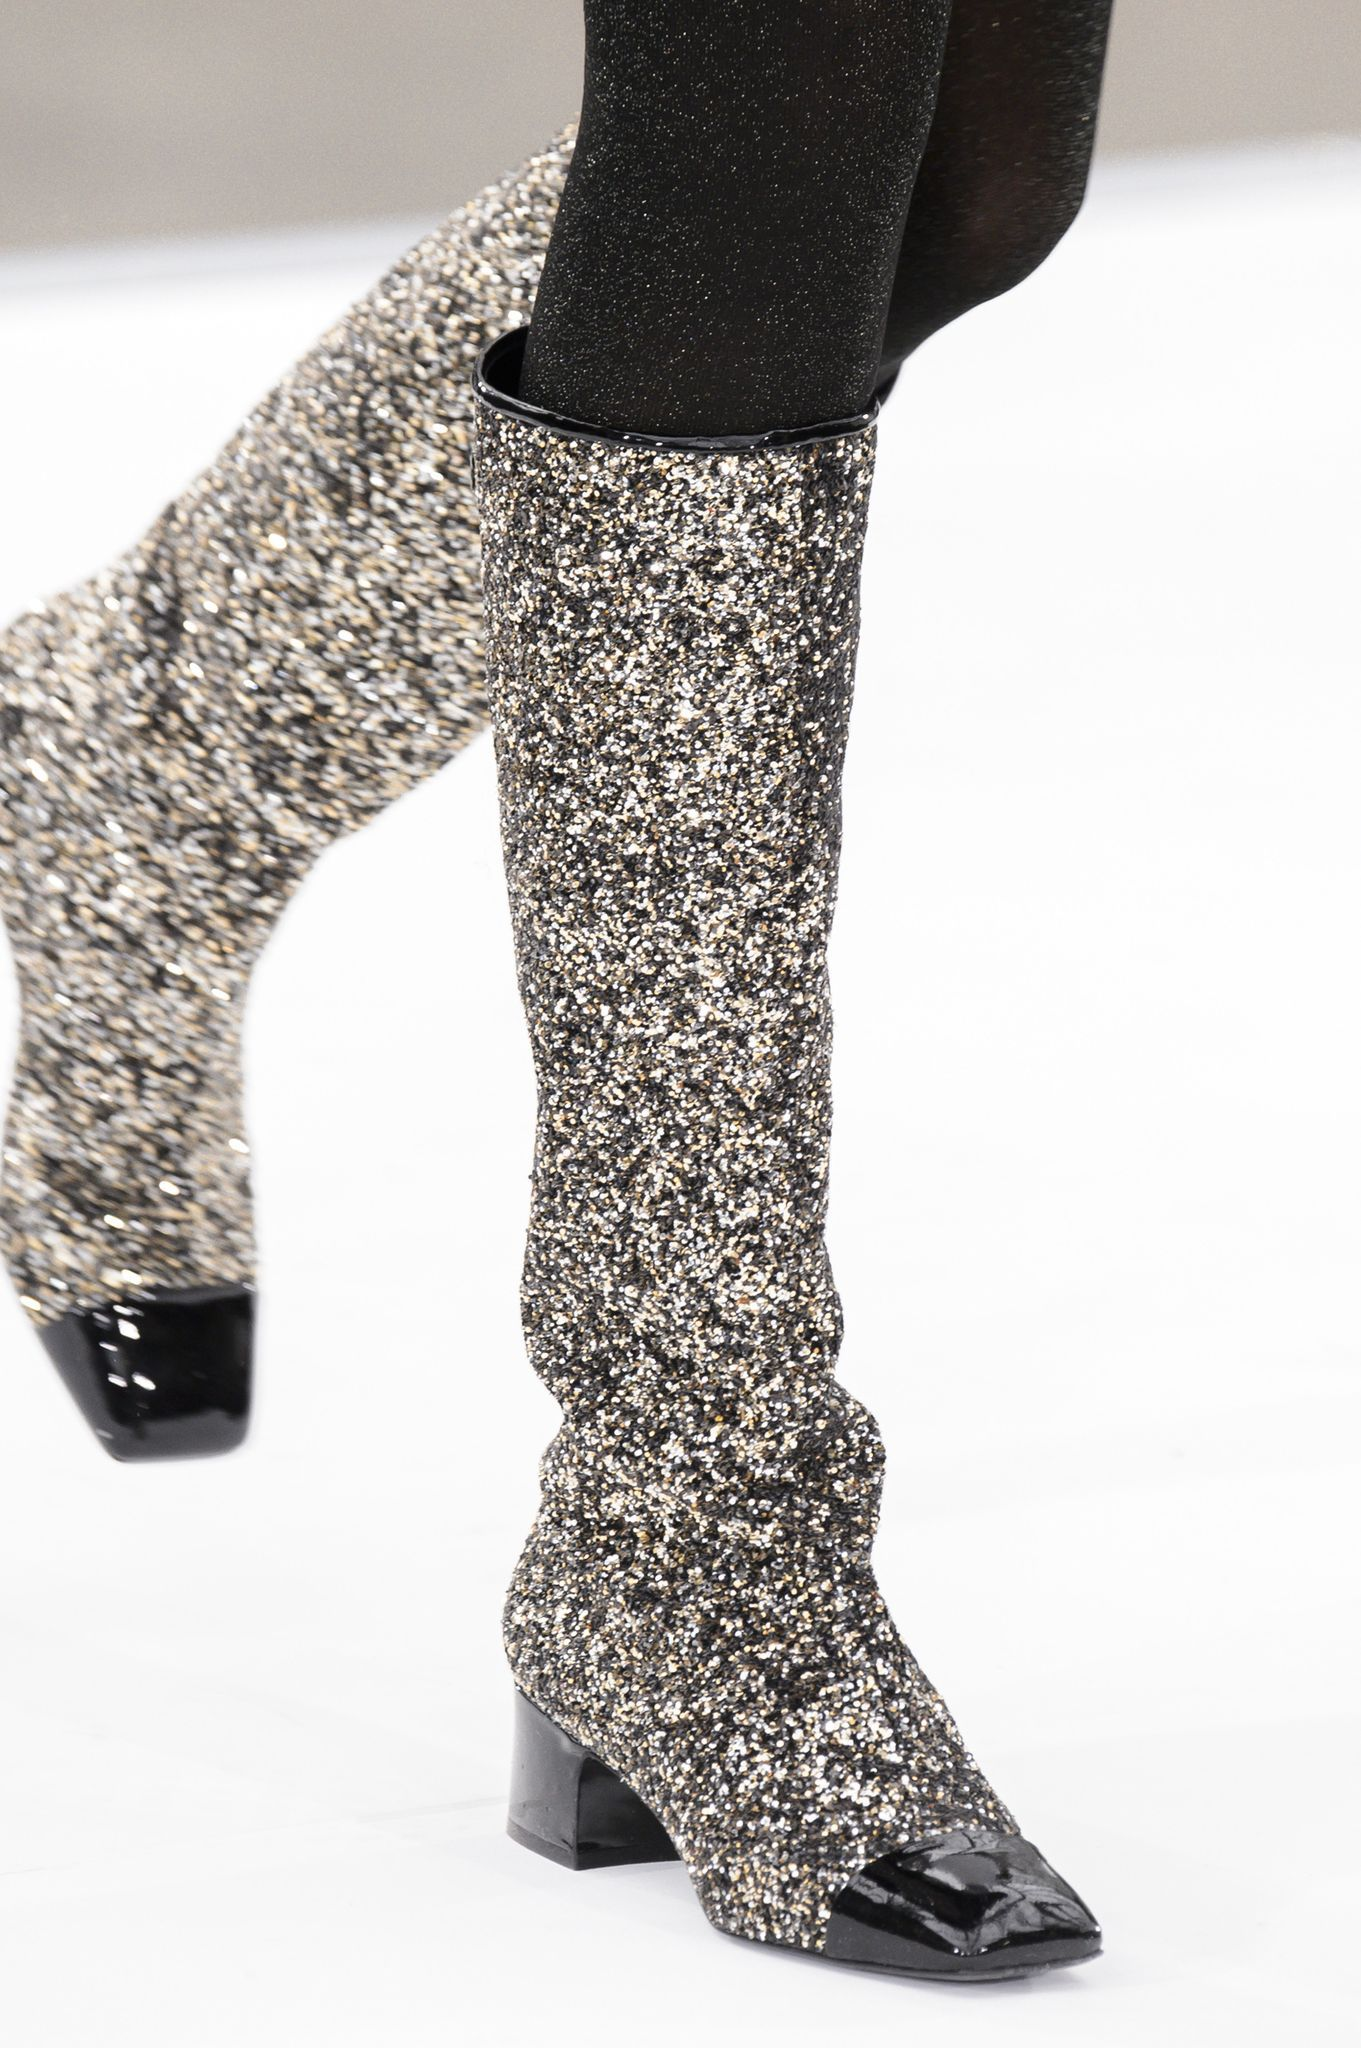 Boots CHANEL tendance hiver 2018